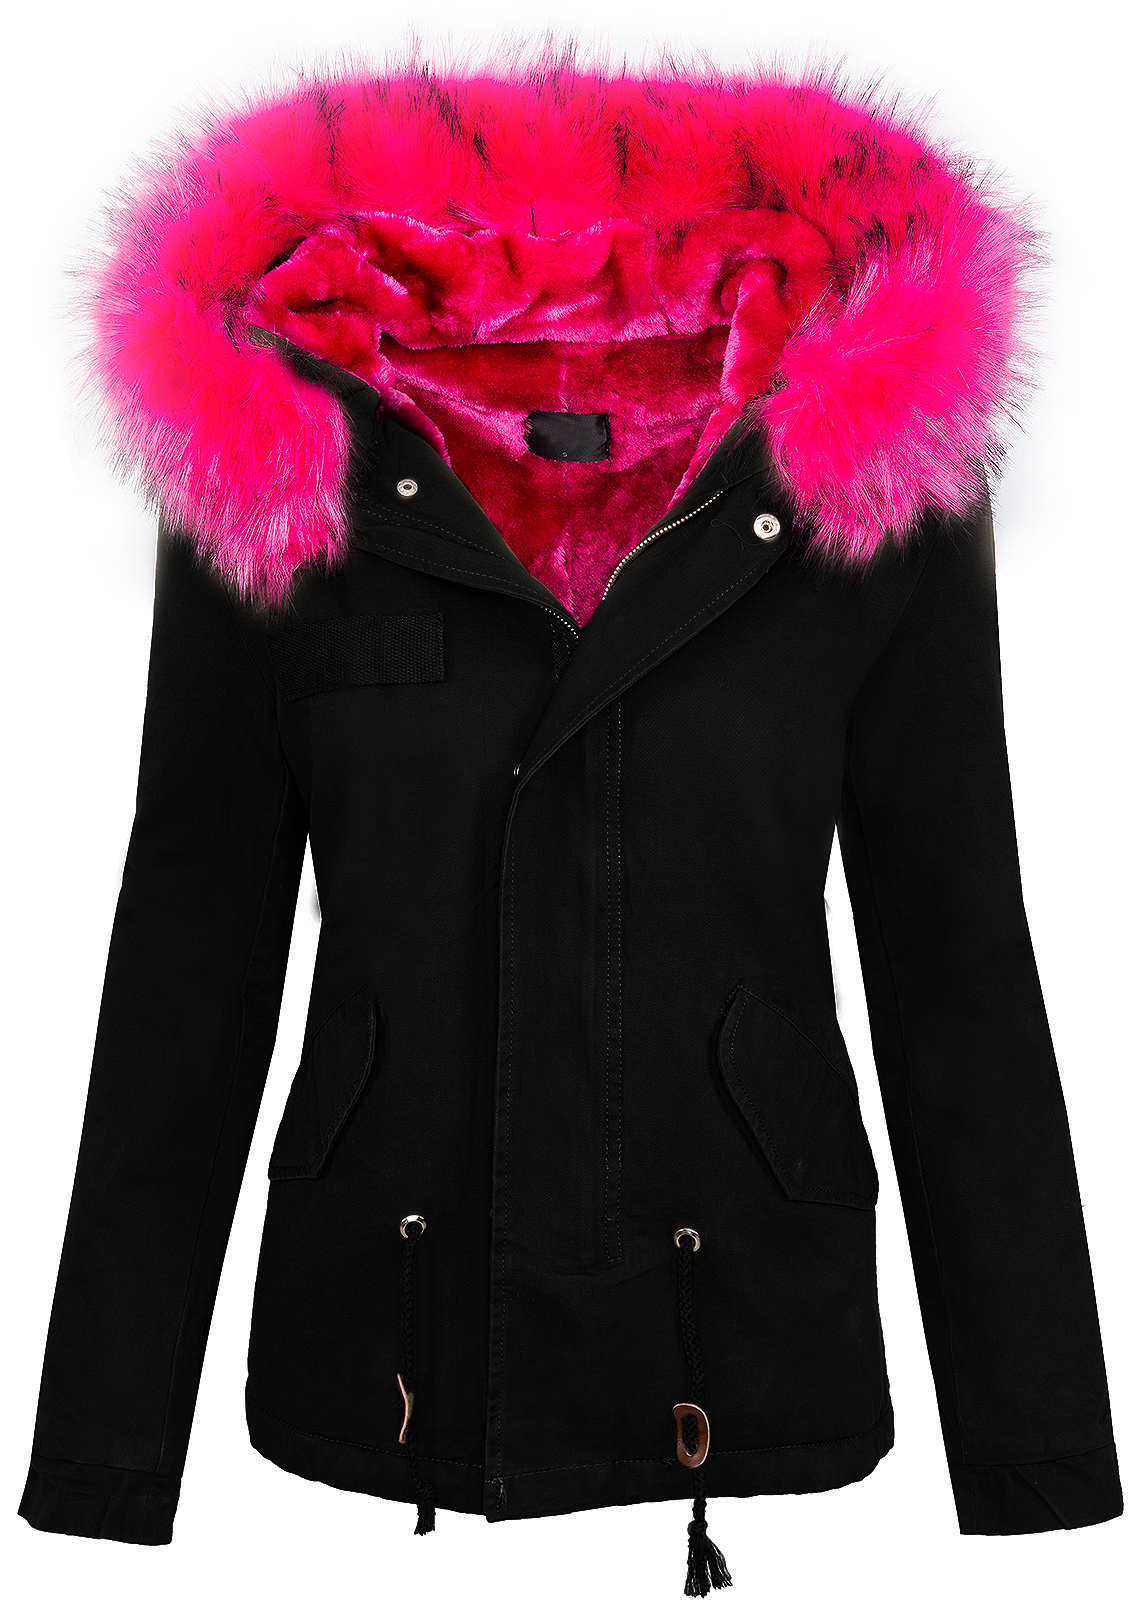 damen winter jacke damen parka vintage style mit kapuze xxl kunstfell d 223 s xl ebay. Black Bedroom Furniture Sets. Home Design Ideas